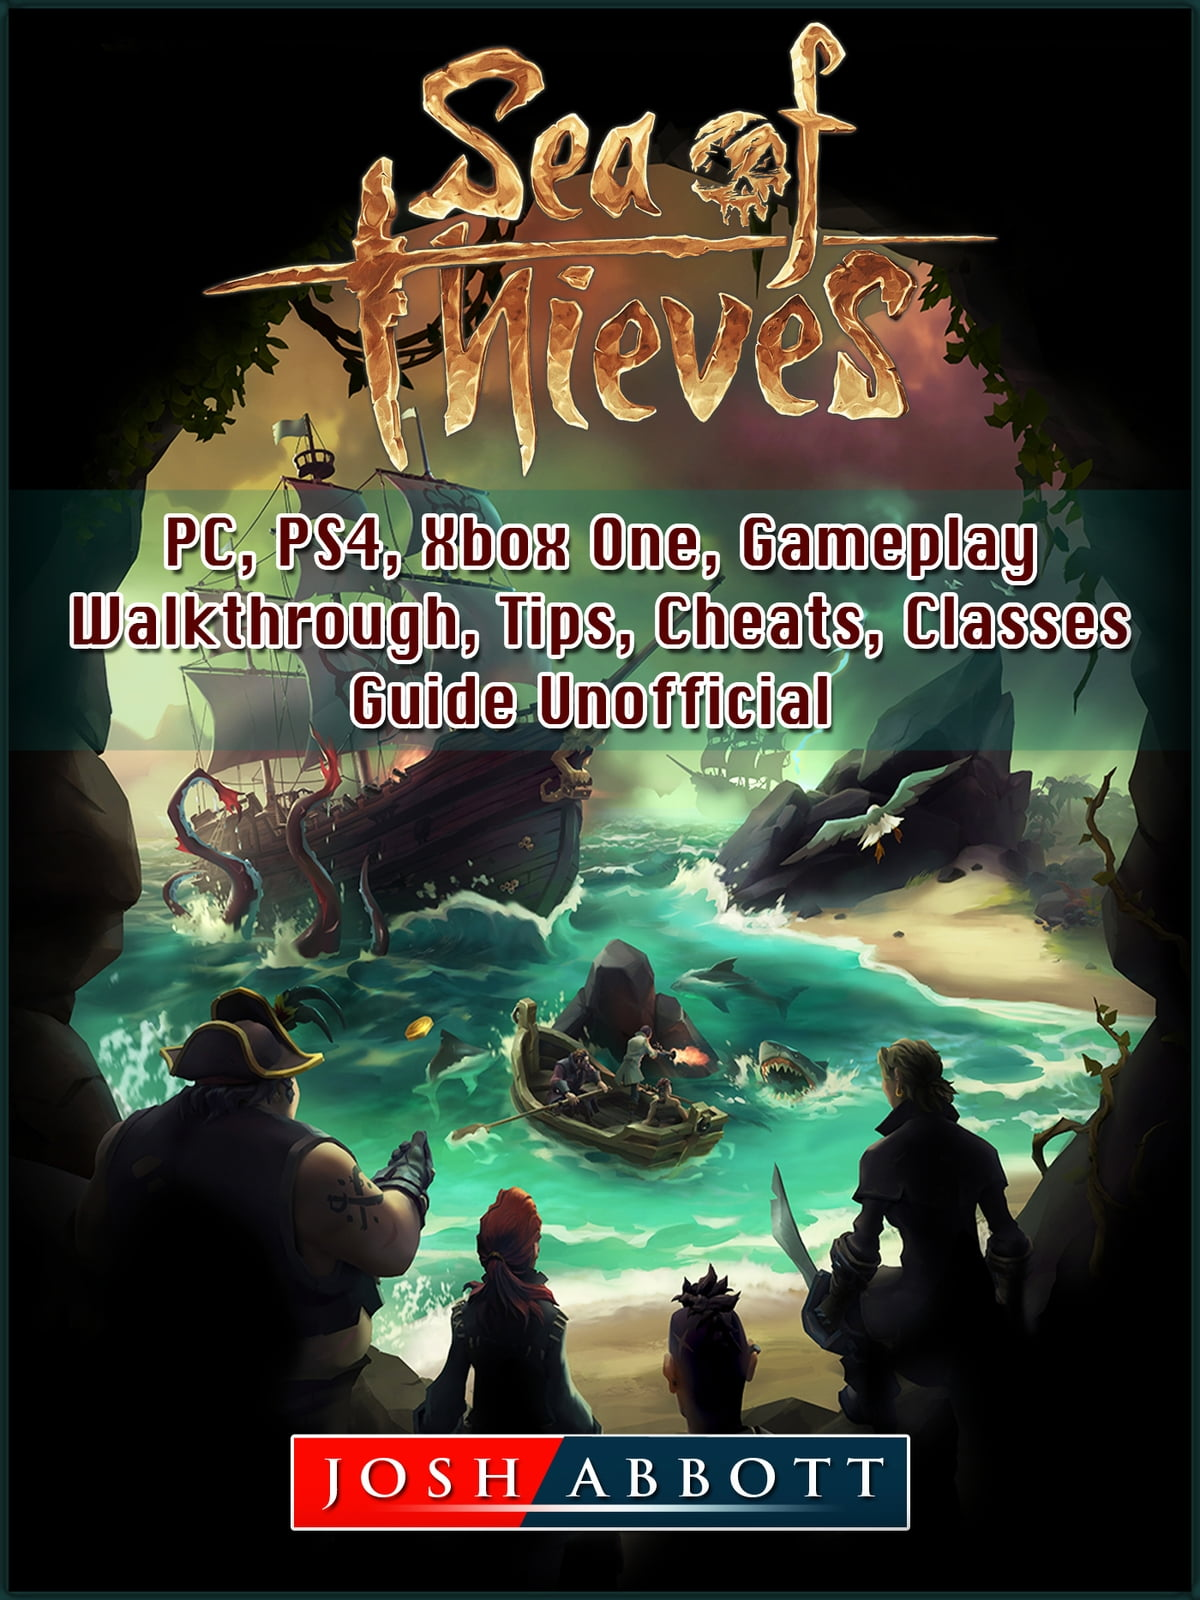 Sea of Thieves, PC, PS4, Xbox One, Gameplay, Walkthrough, Tips, Cheats,  Classes, Guide Unofficial ebook by Josh Abbott - Rakuten Kobo